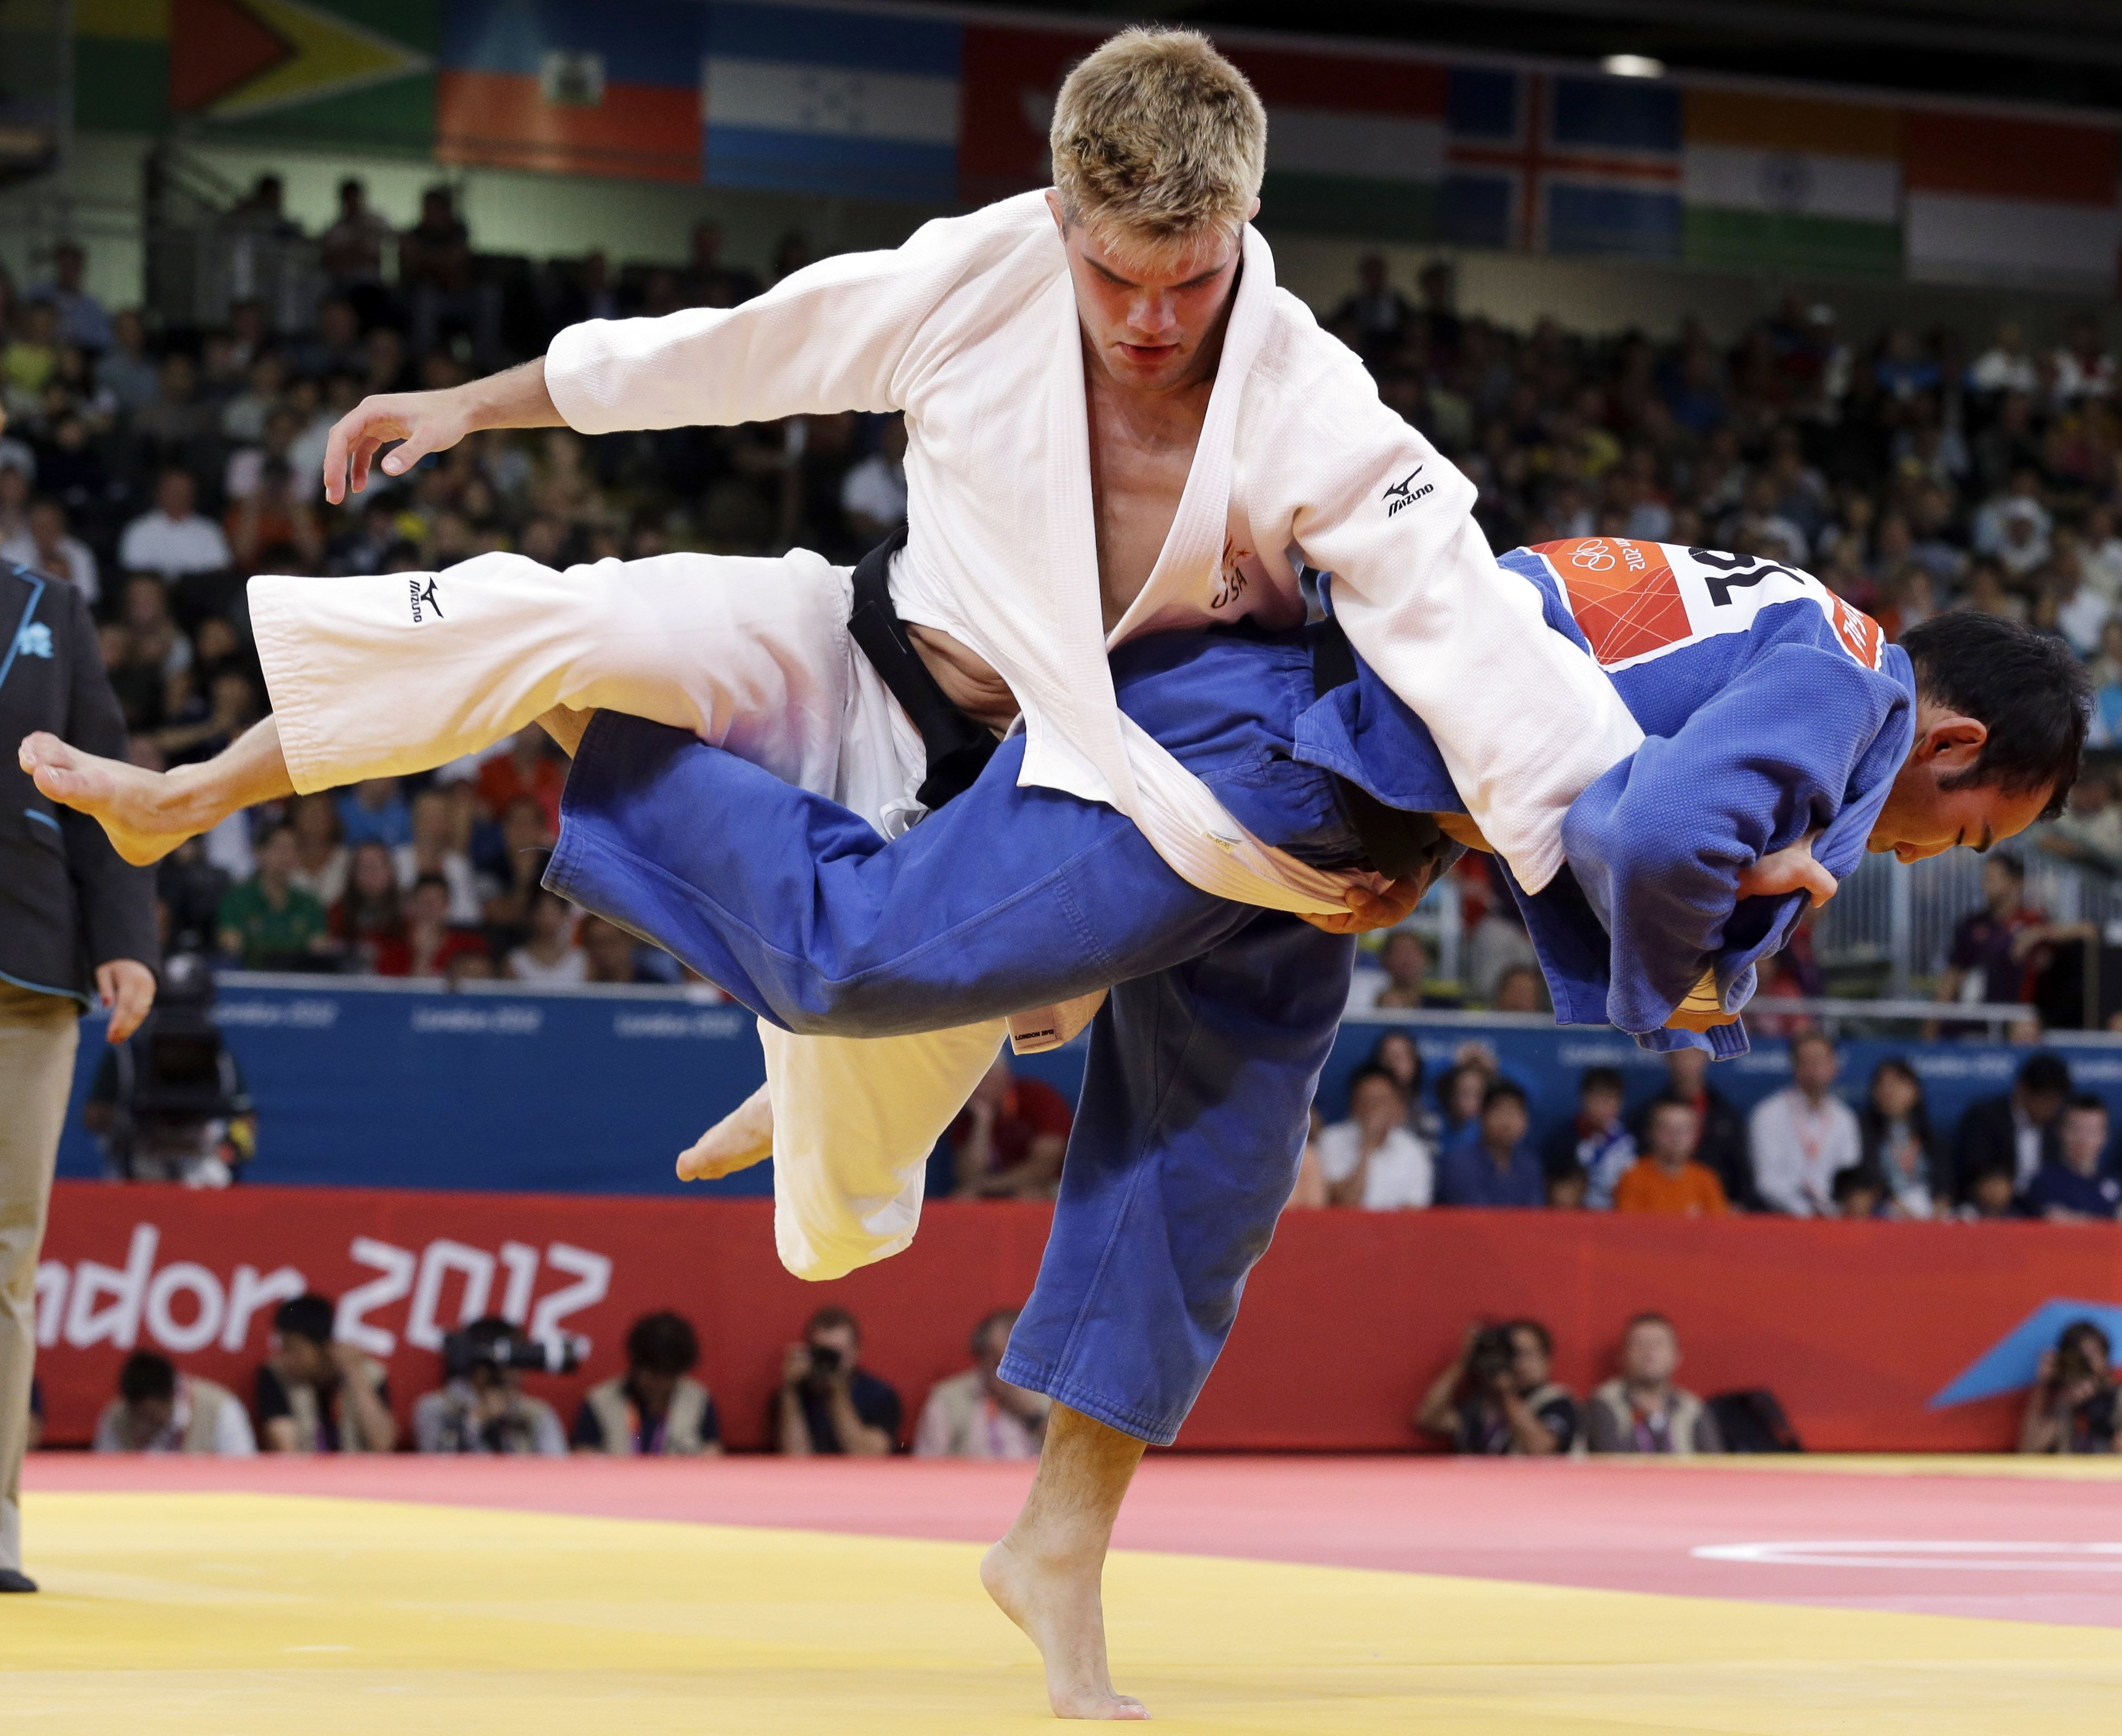 Best Of Submissions From The 2017 Judo World Championships